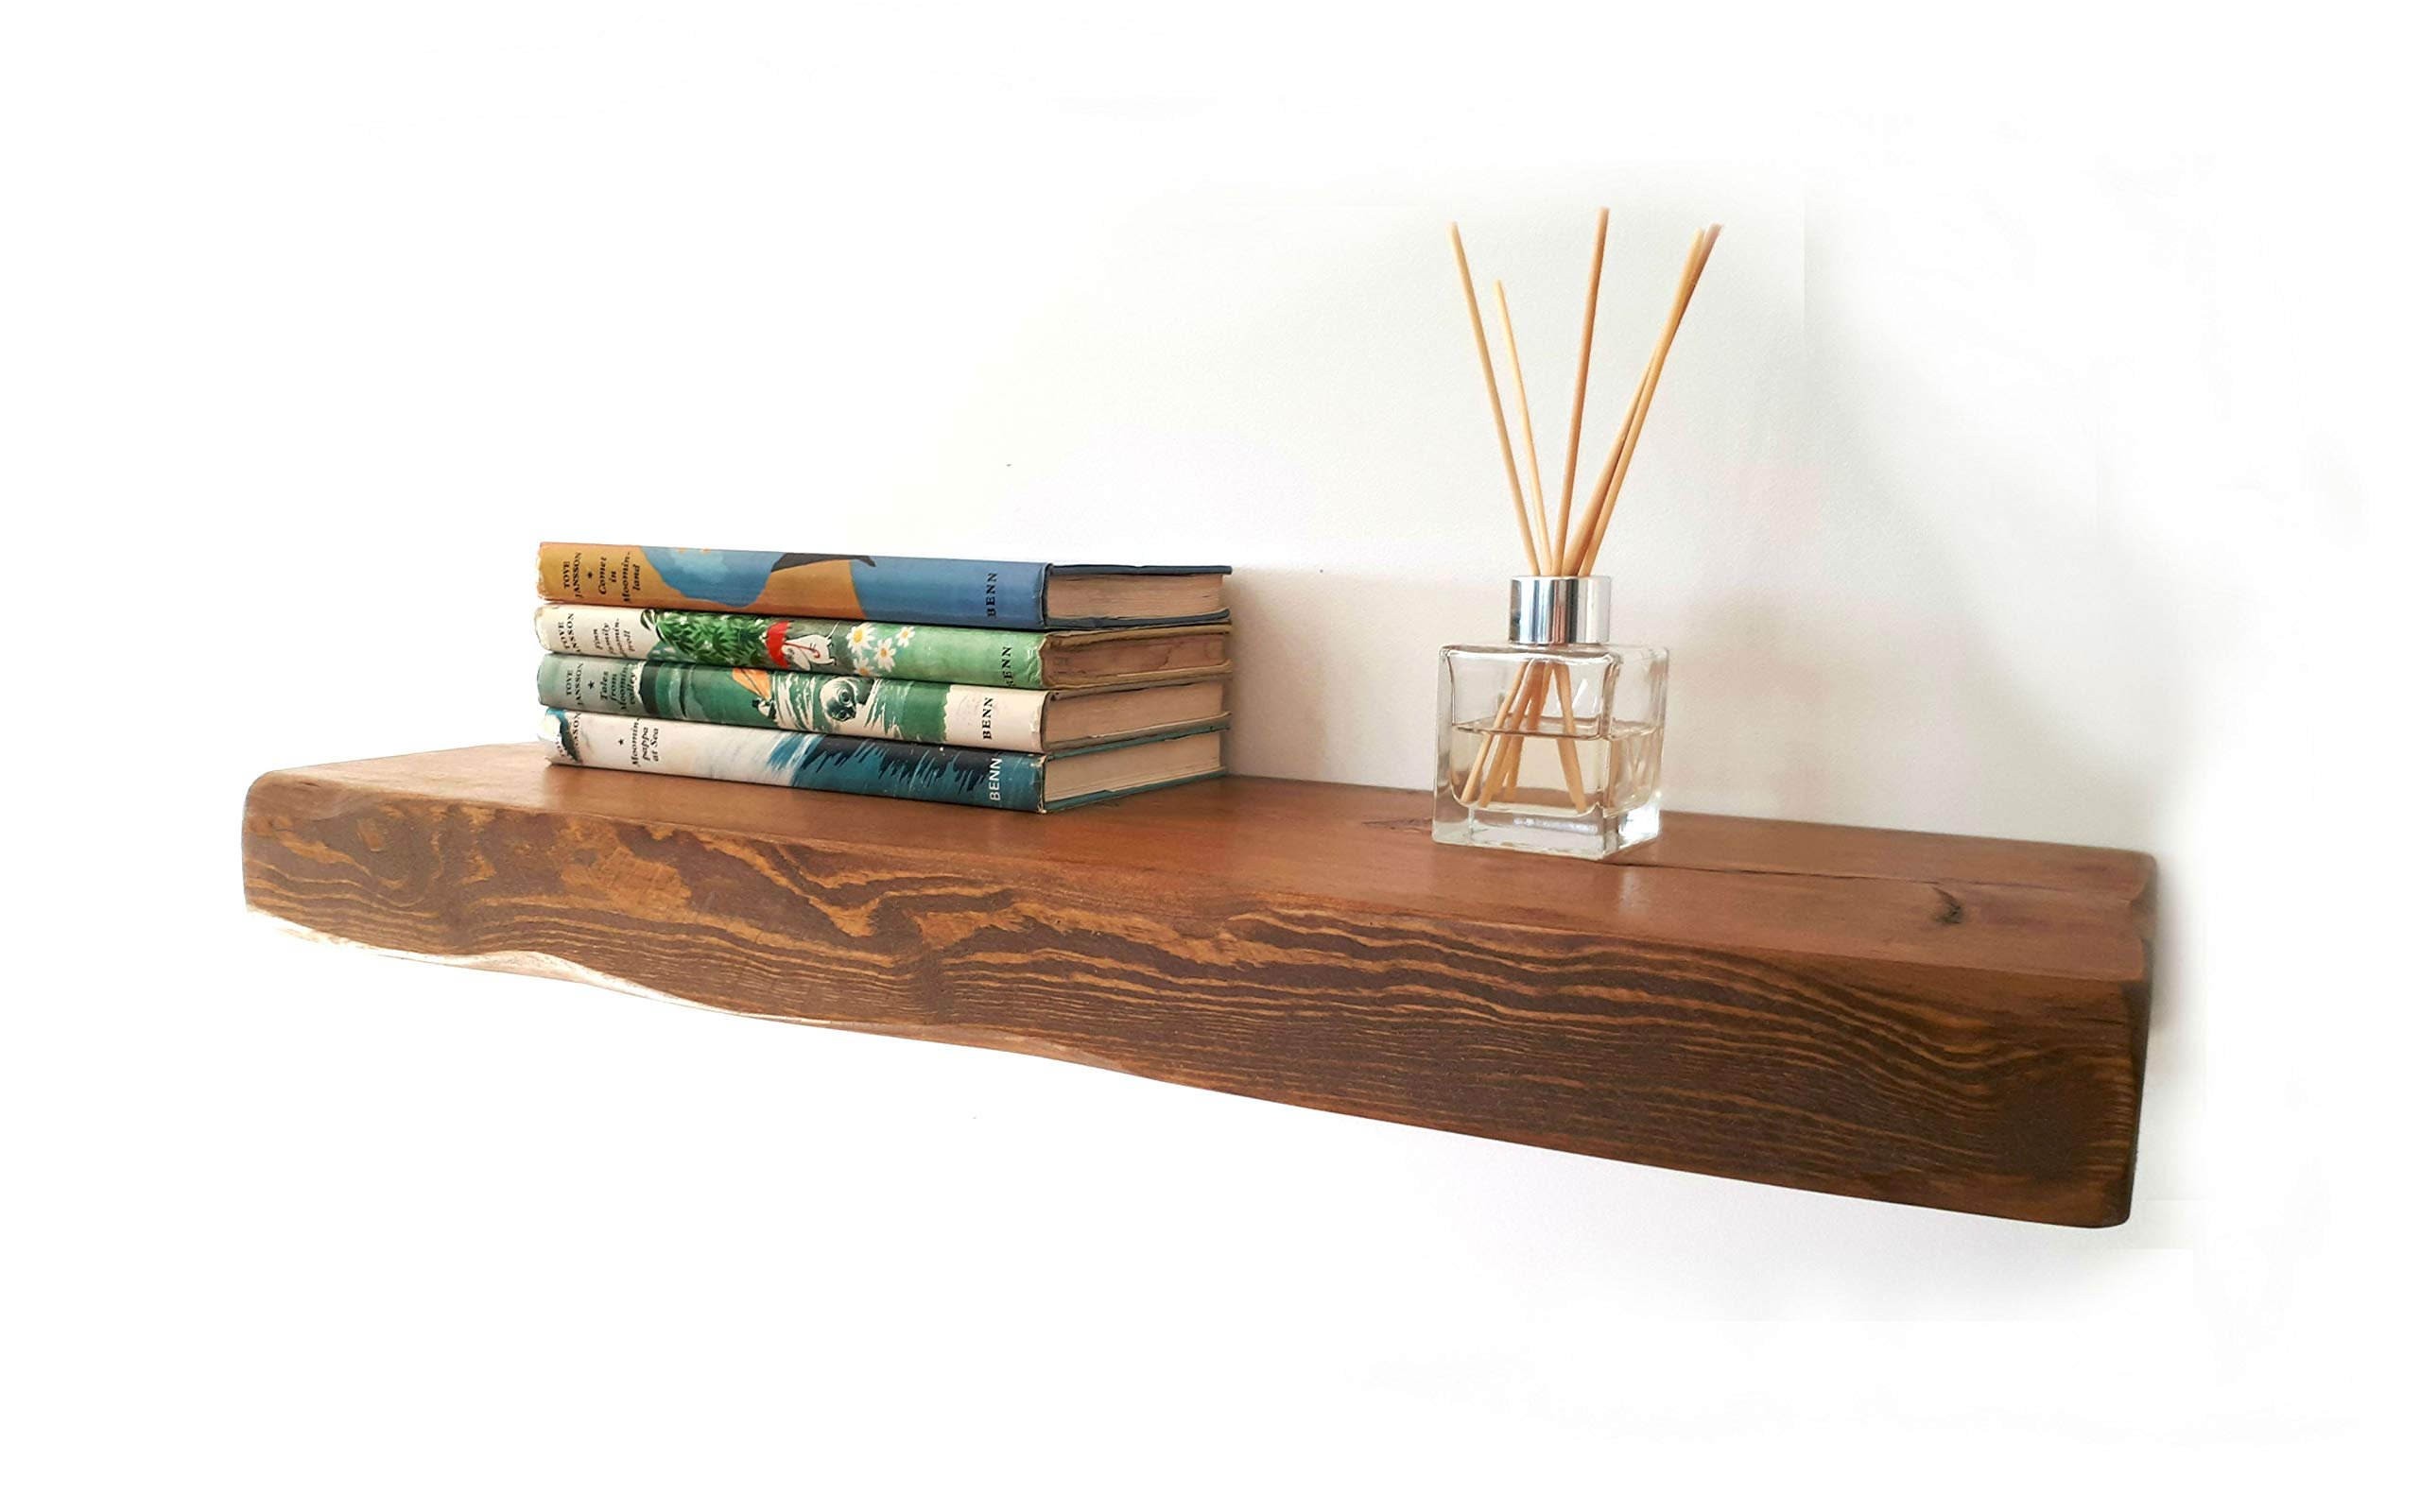 floating shelves reclaimed solid wood rustic wall shelf in medium oak finish 1 5 ft long perfect for living room kitchen bathroom office